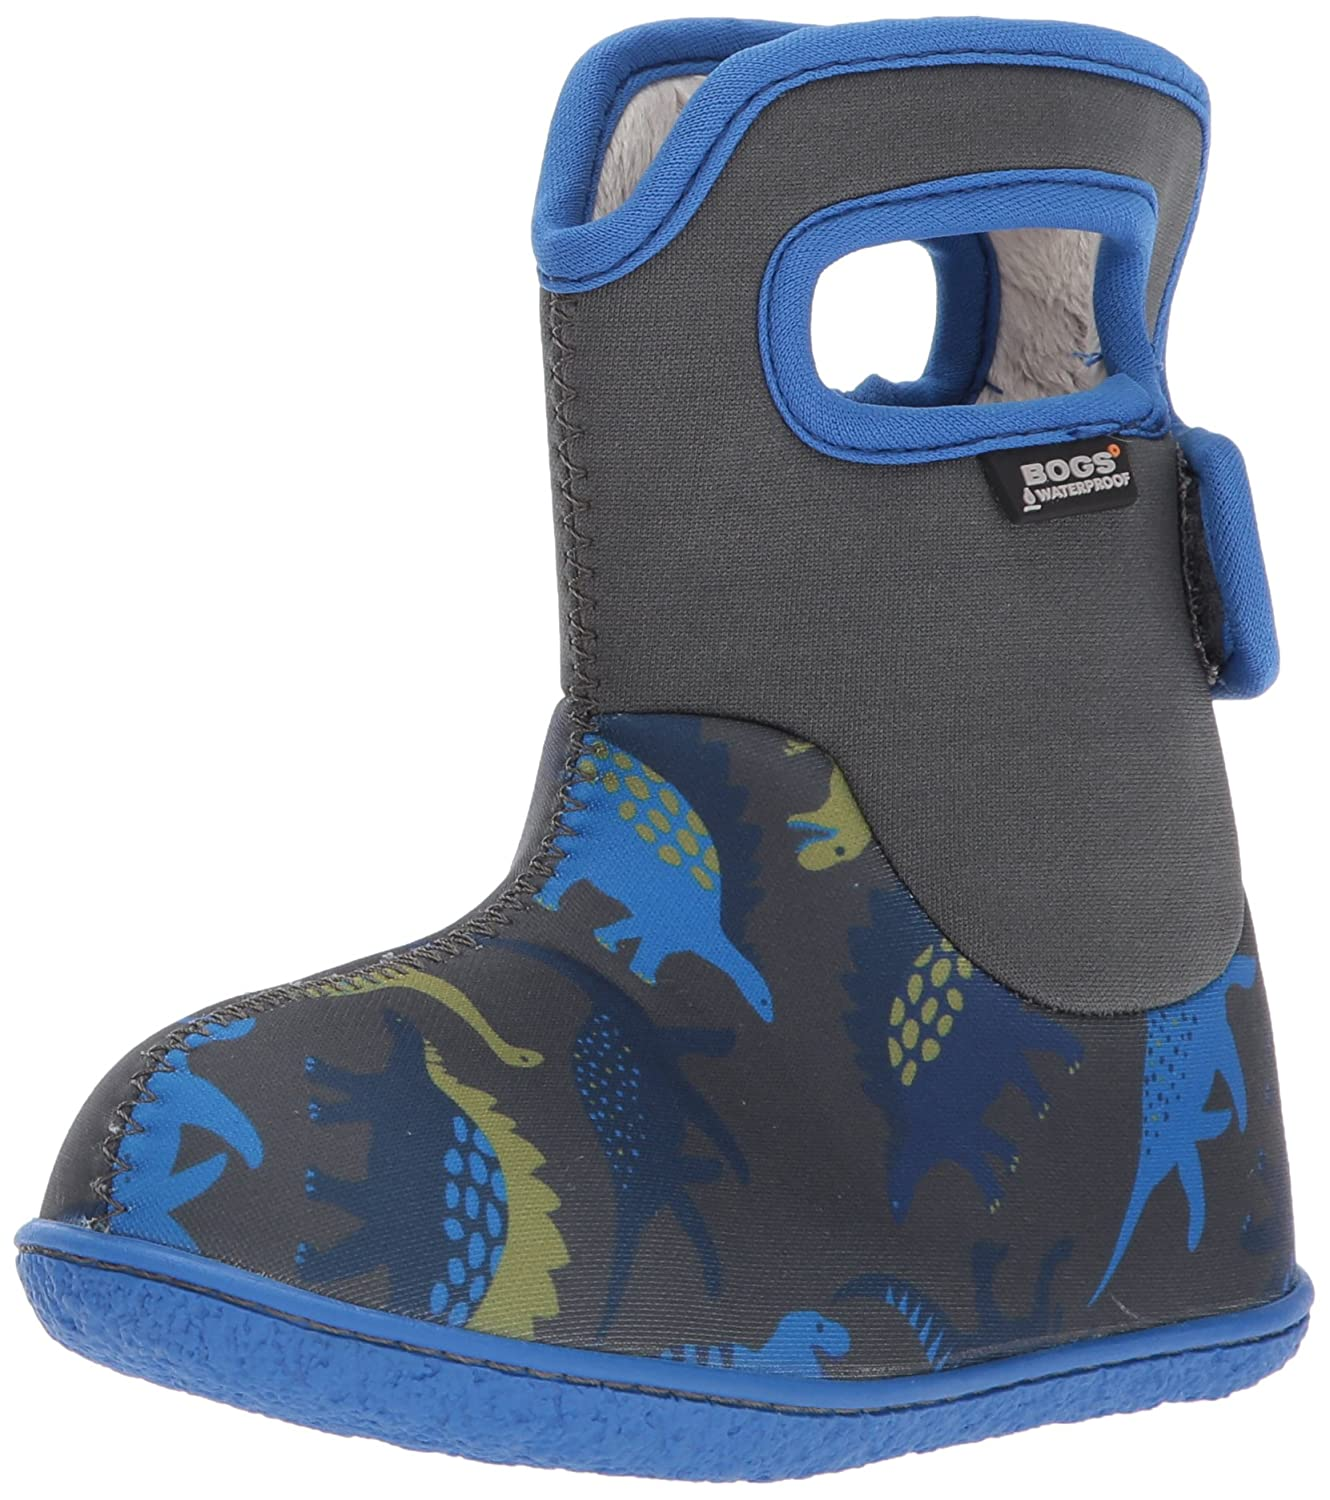 485f8eb9850f6 Bogs Baby Bogs Waterproof Insulated Toddler/Kids Rain Boots for Boys and  Girls